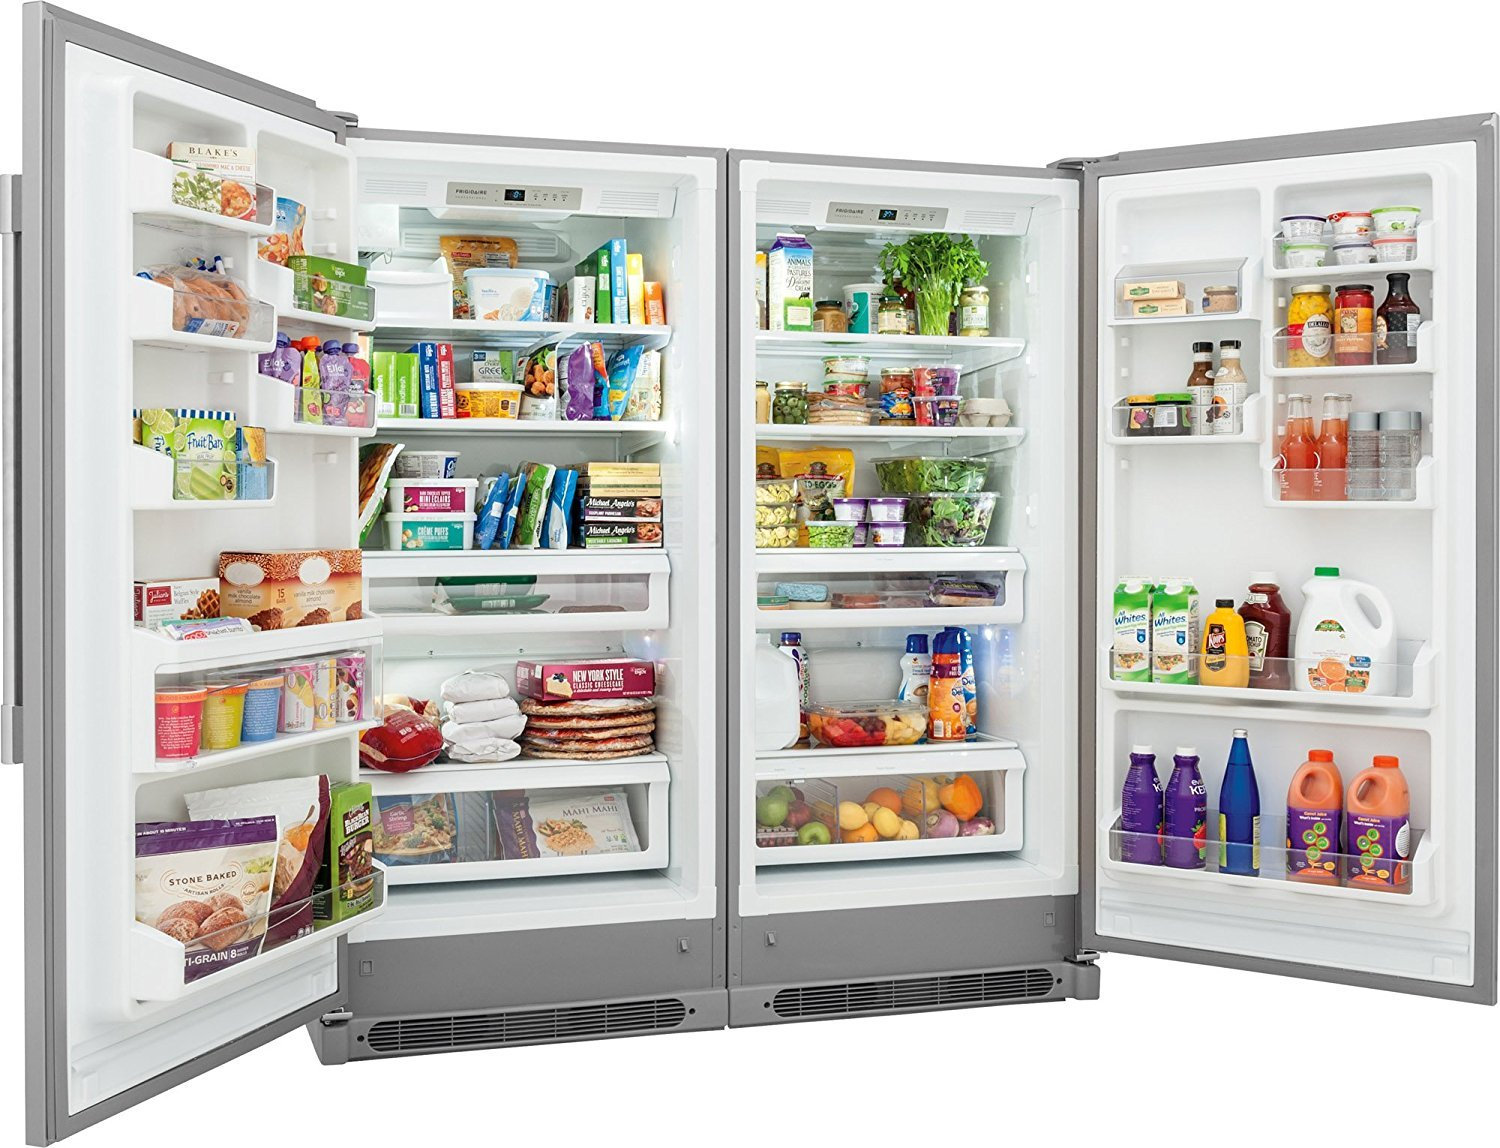 All Freezer Combo with Easy Care Stainless Frigidaire Professional Series Built-In All Refrigerator